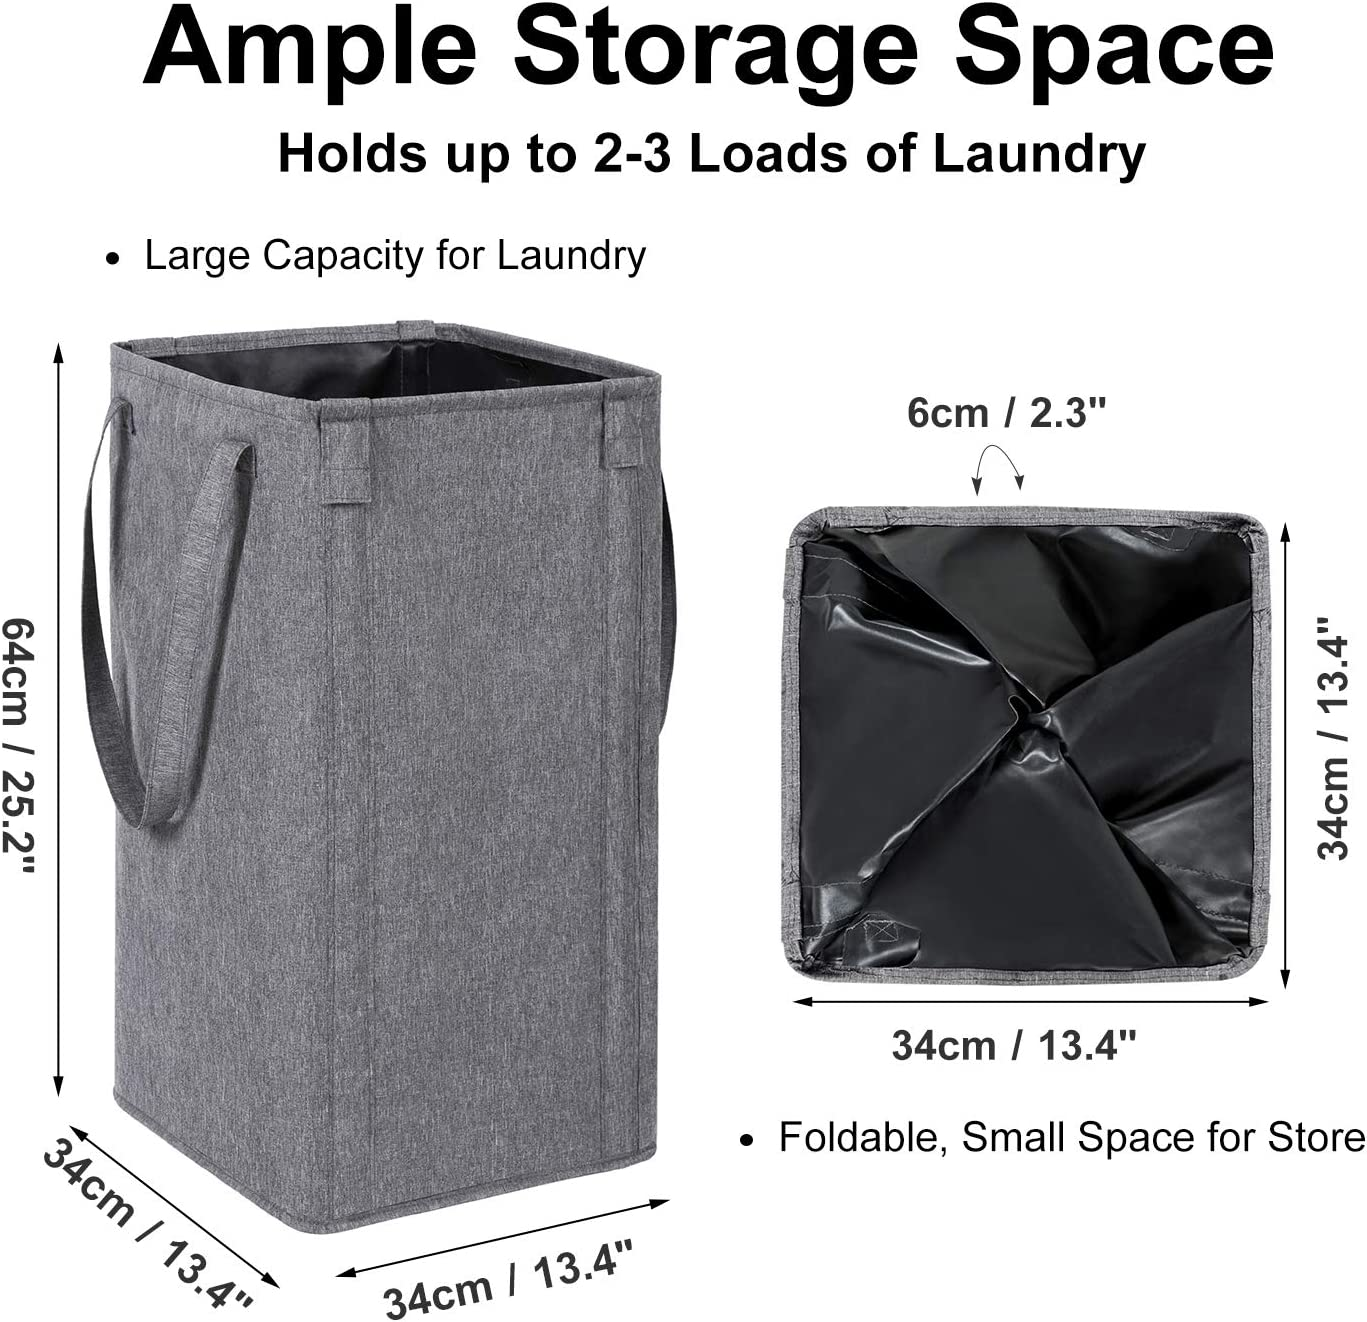 WOWLIVE Large Laundry Hamper Tall Laundry Basket with 2 Laundry Bags Foldable Clothes Hamper Rectangular Washing Bin Upgraded Gray